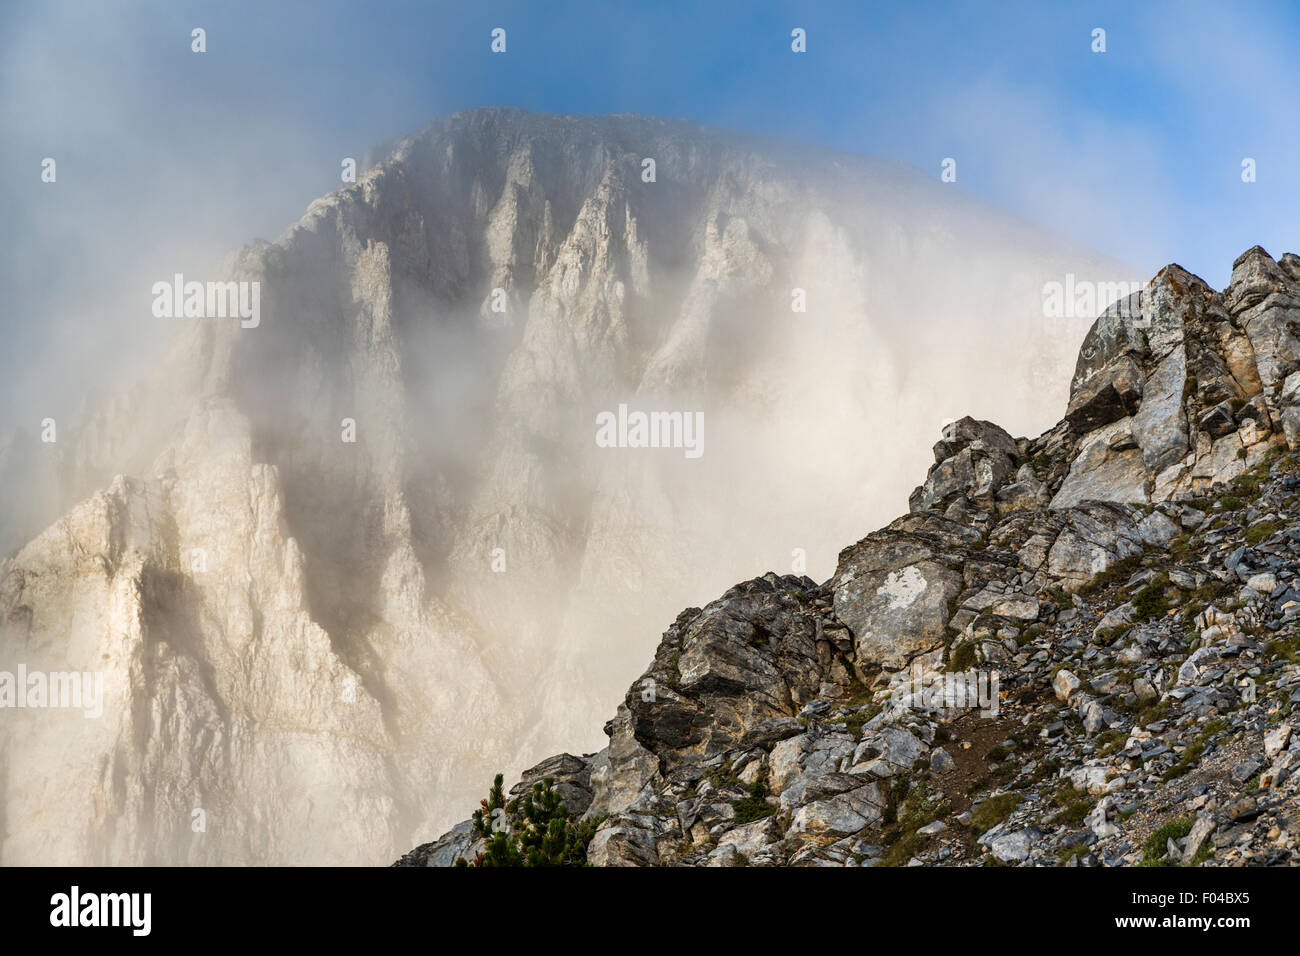 Summit of Mt Olympus, Greece emerges out of the clouds into sunshine - Stock Image